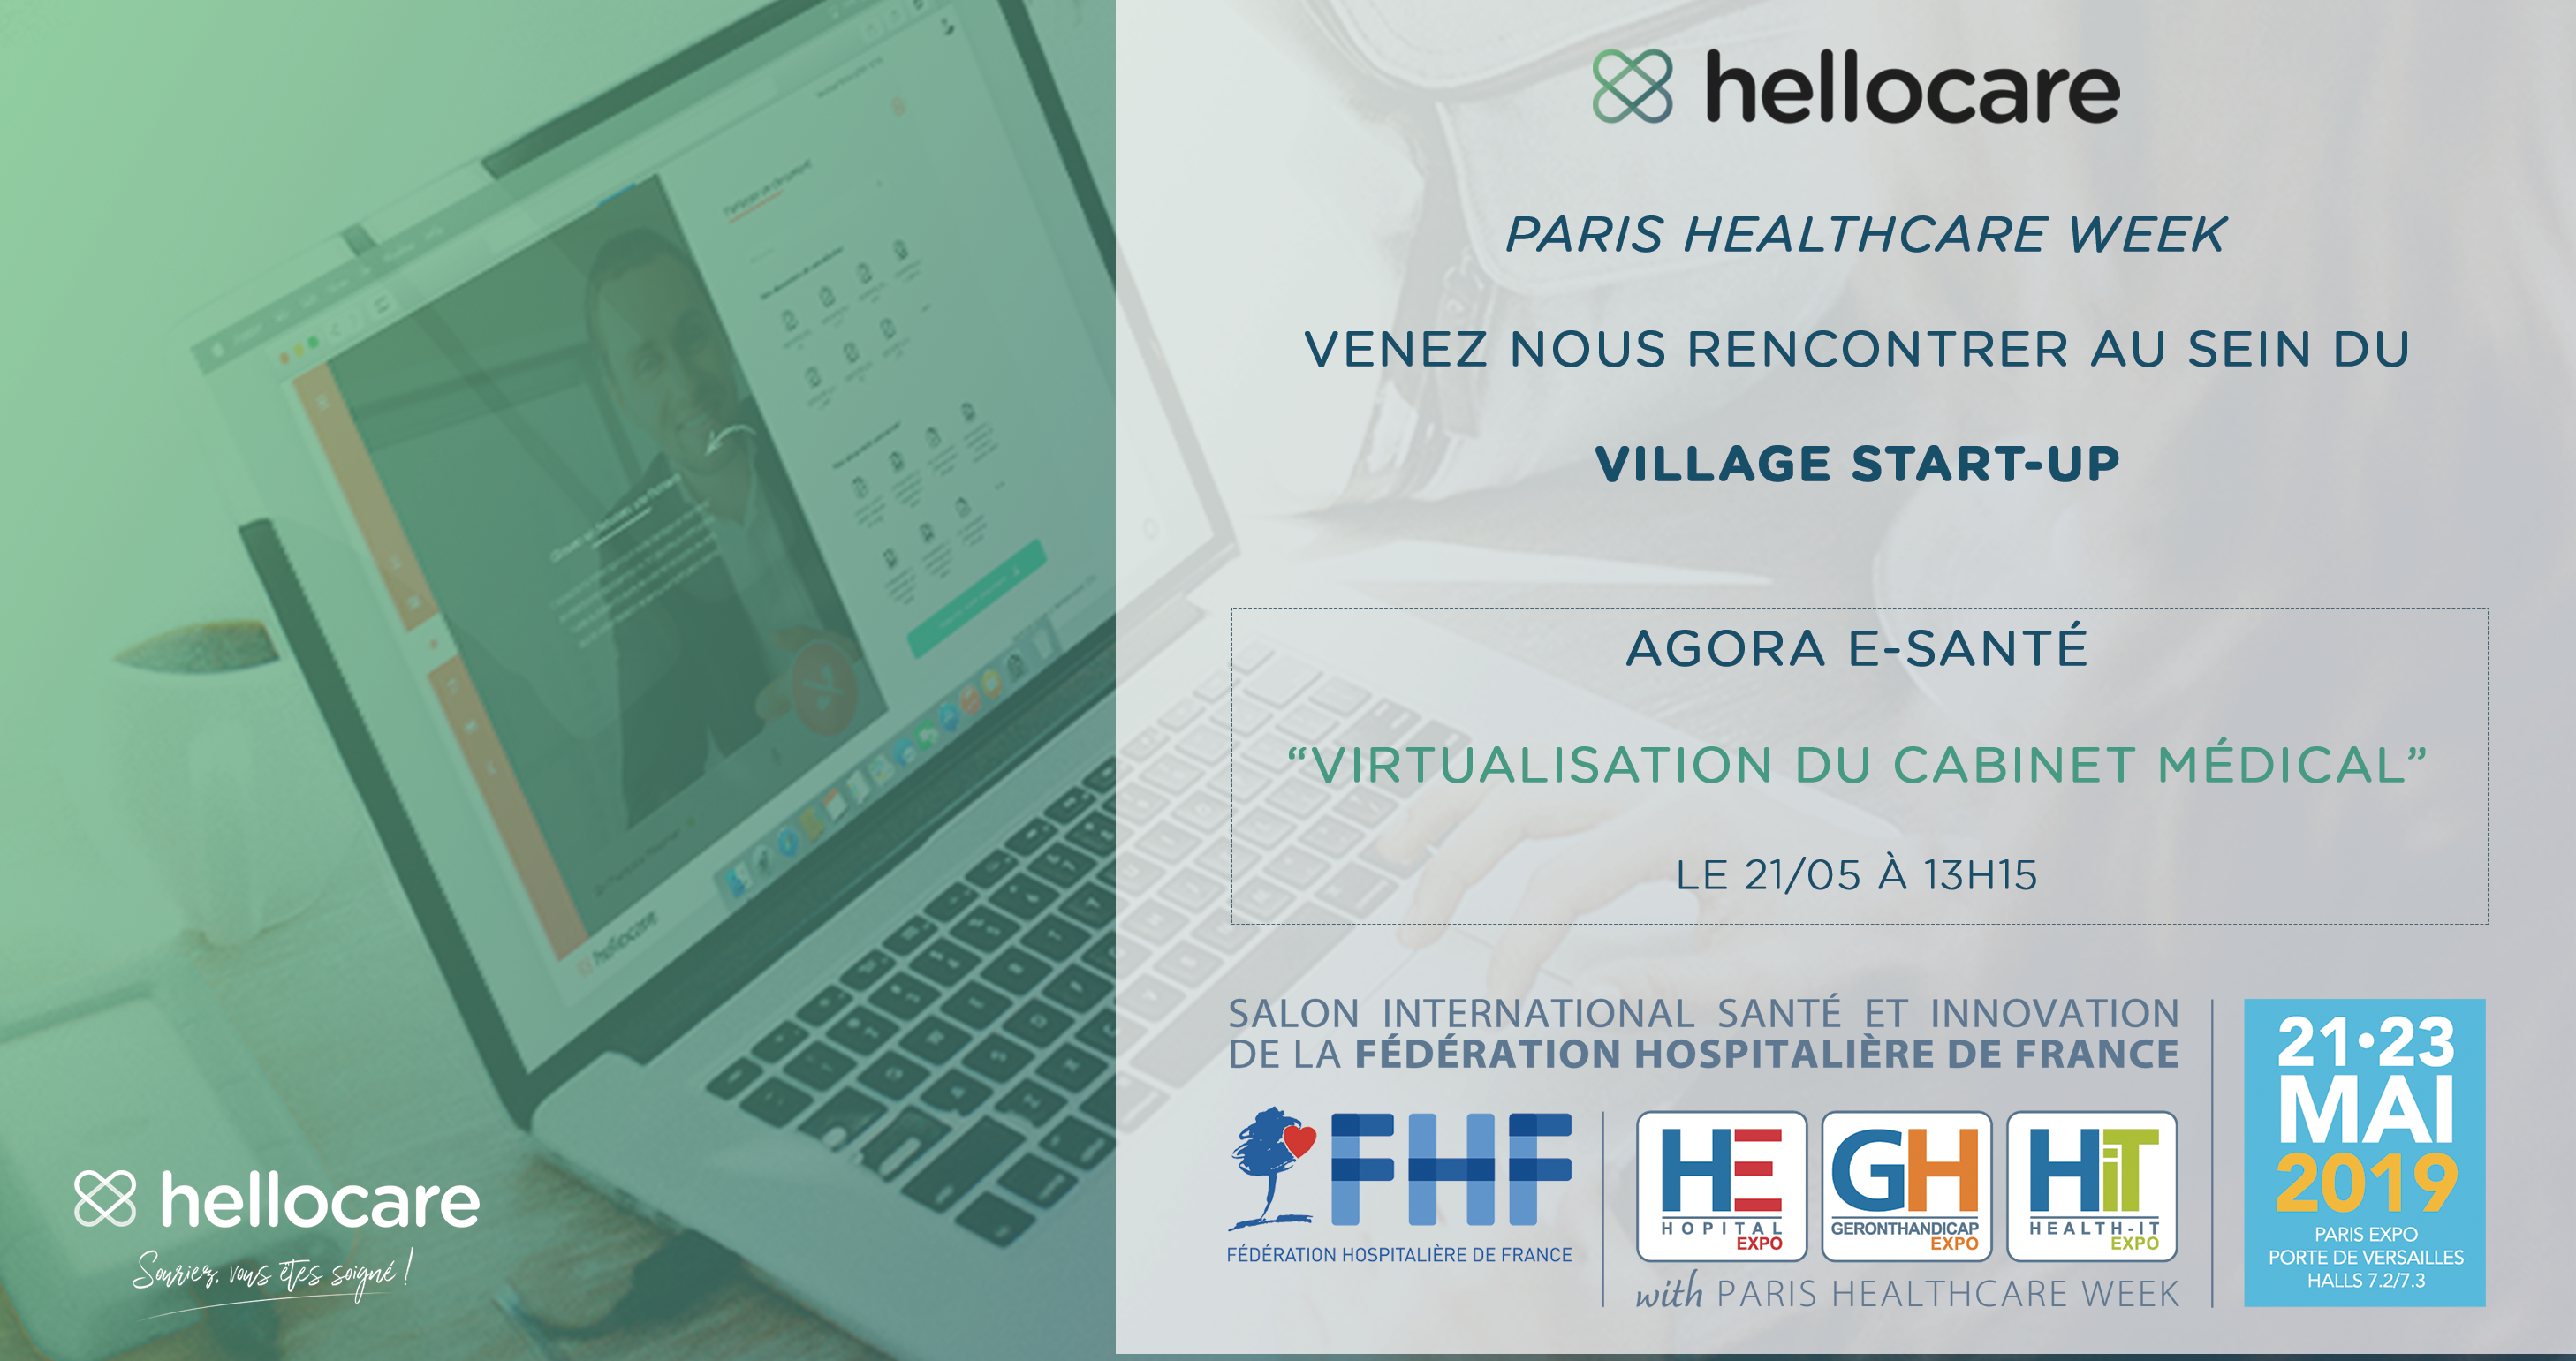 paris-healthcareweek-hellocare